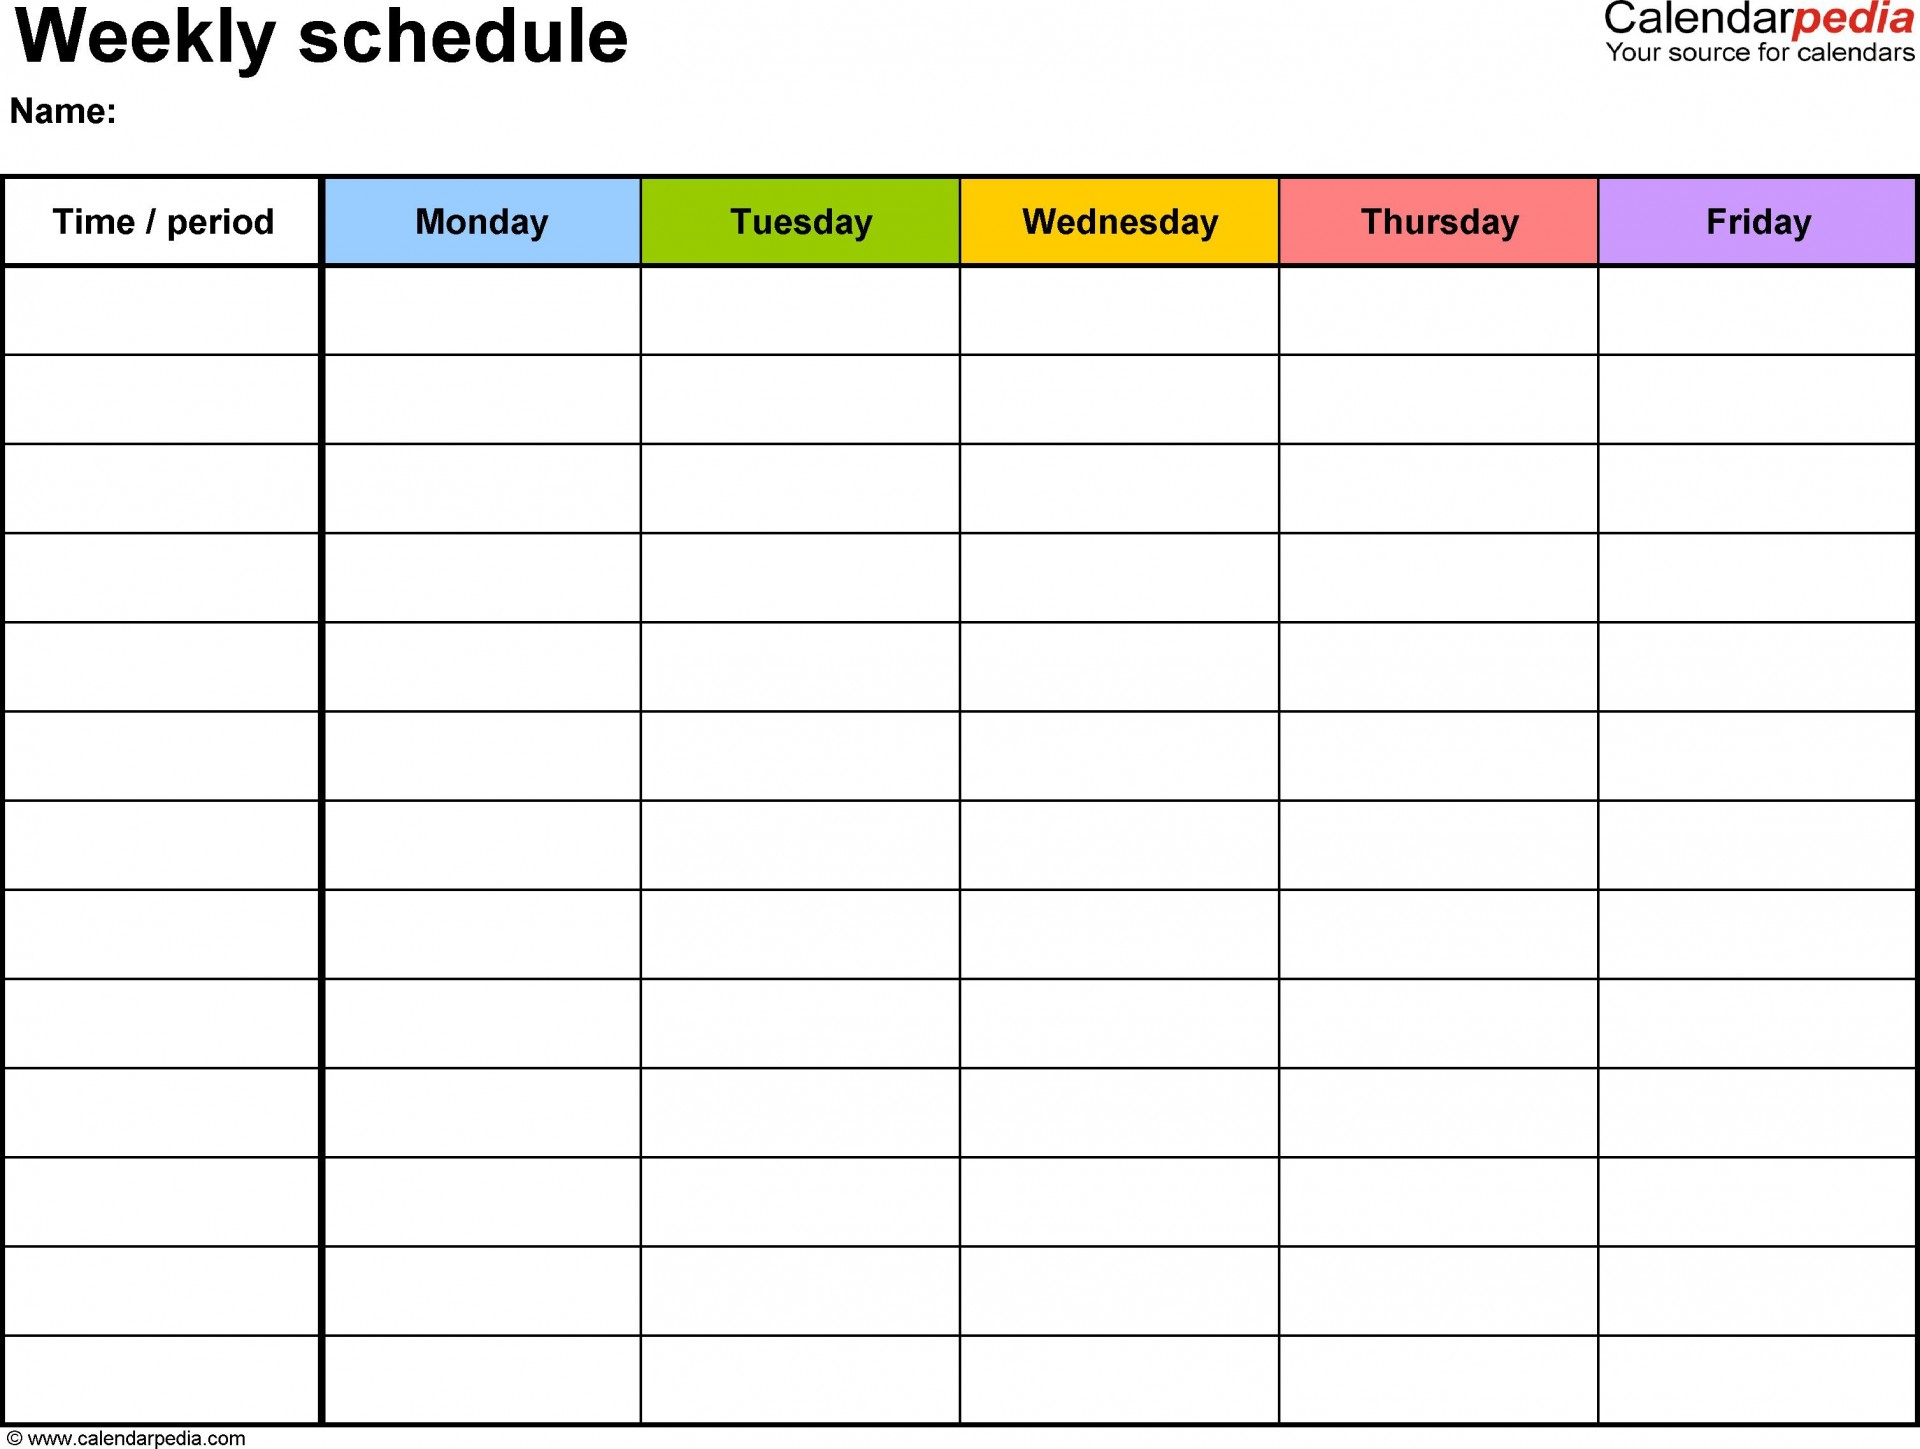 003 Sensational Weekly Schedule Template Word Example  School Work Plan1920